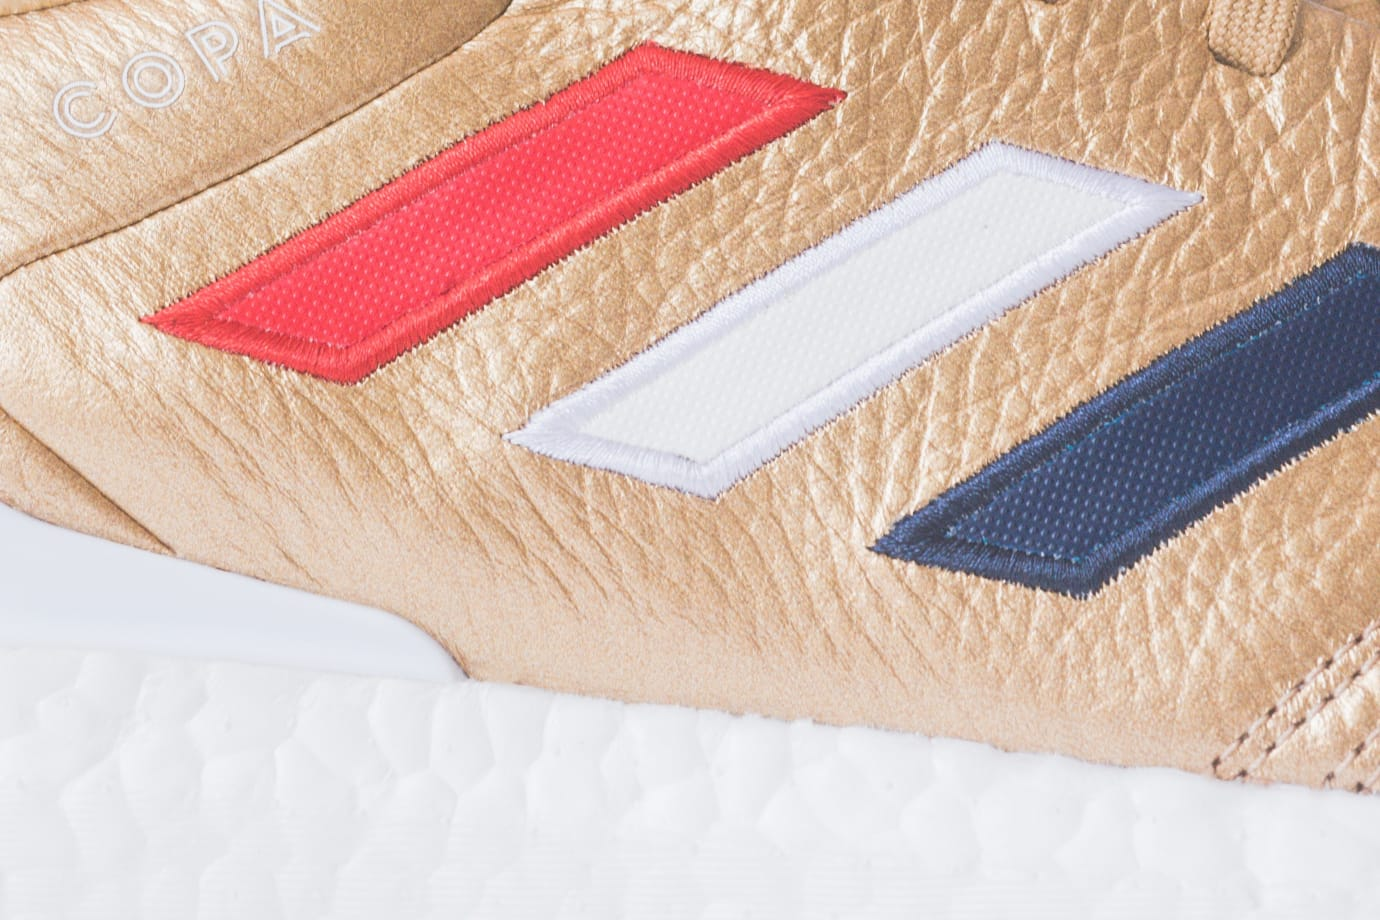 Kith x Adidas Soccer Copa Mundial 18 Ultra Boost (Detail)